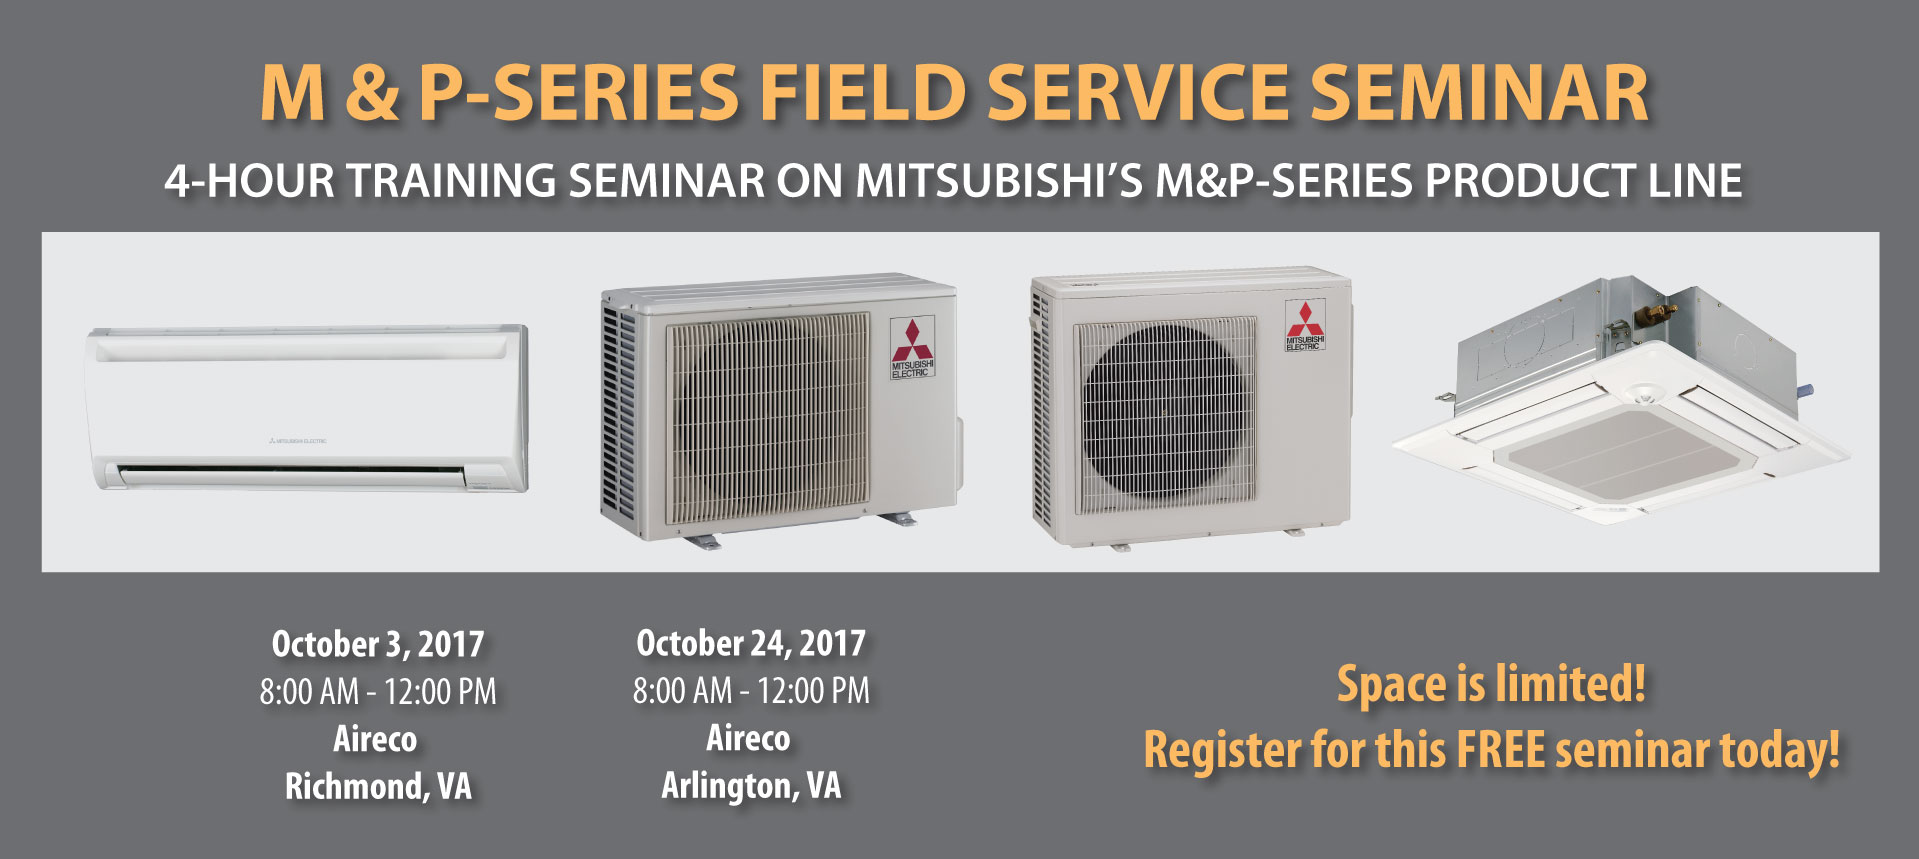 4-hour M&P-Series Field Service Seminar (October 24, 2017)